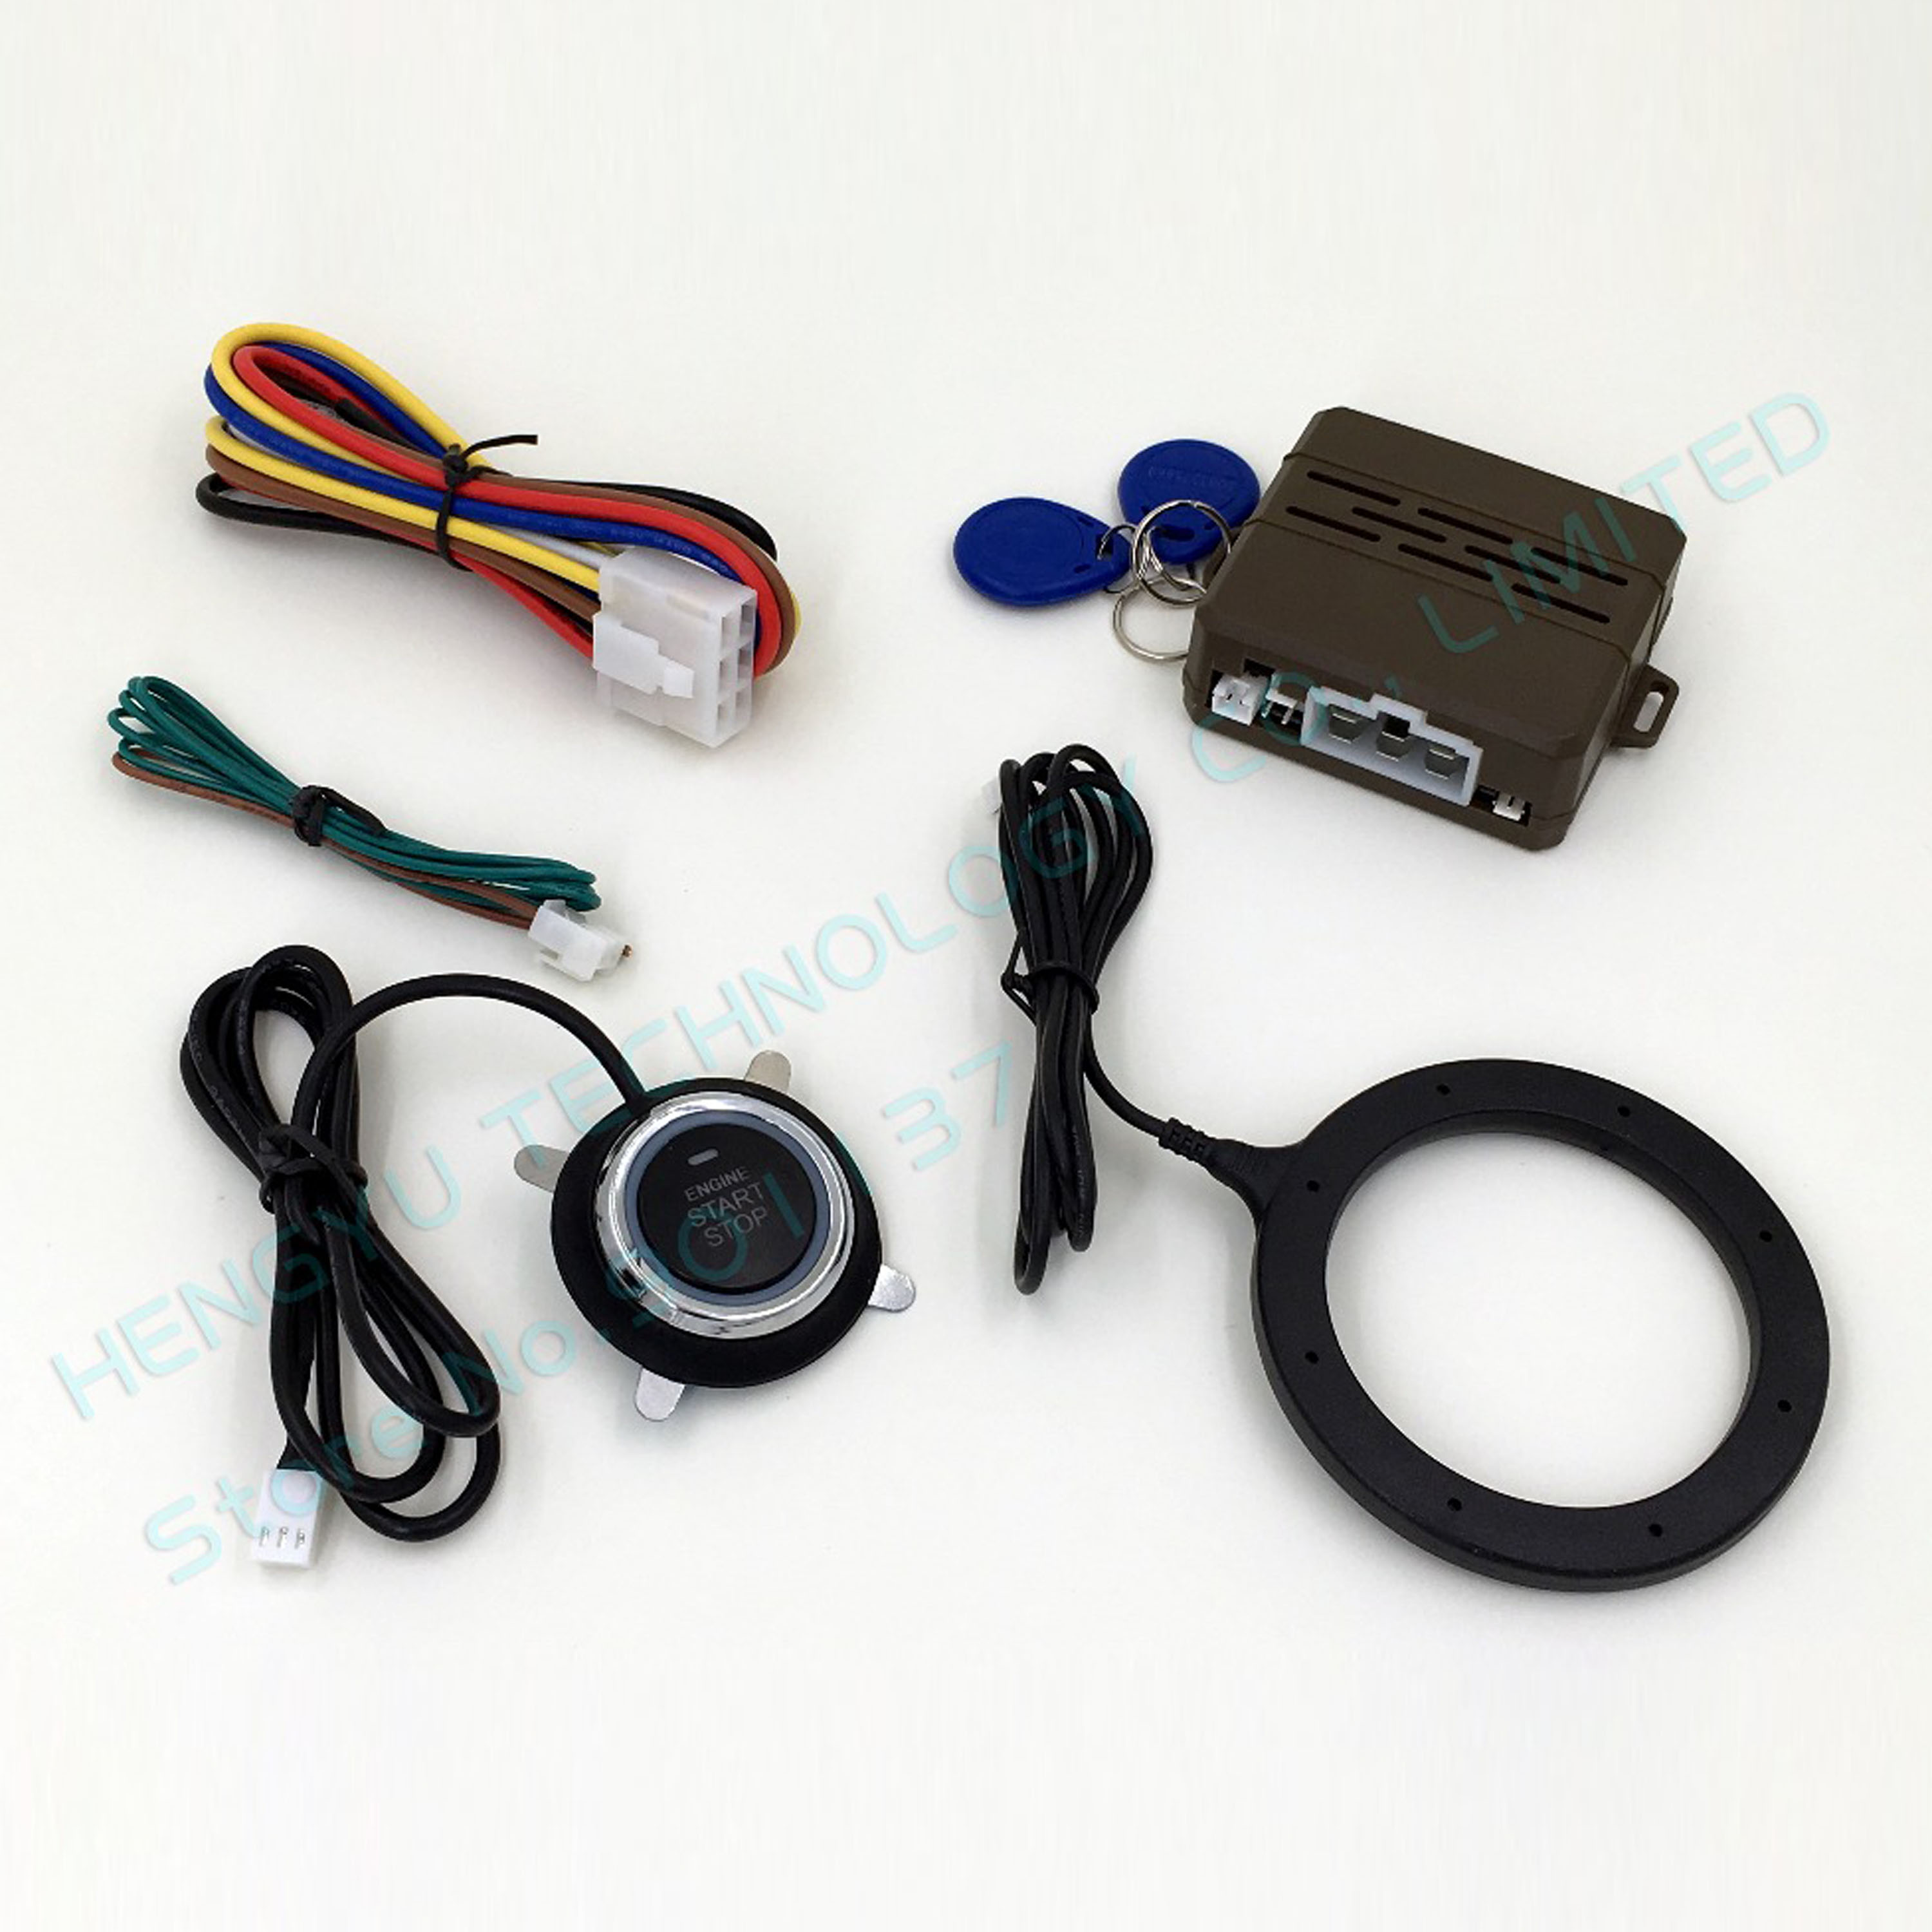 New FS-55S Car Engine Push Start Button RFID Lock Ignition Starter Keyless Go Start Stop Immobilizer System Driving Security